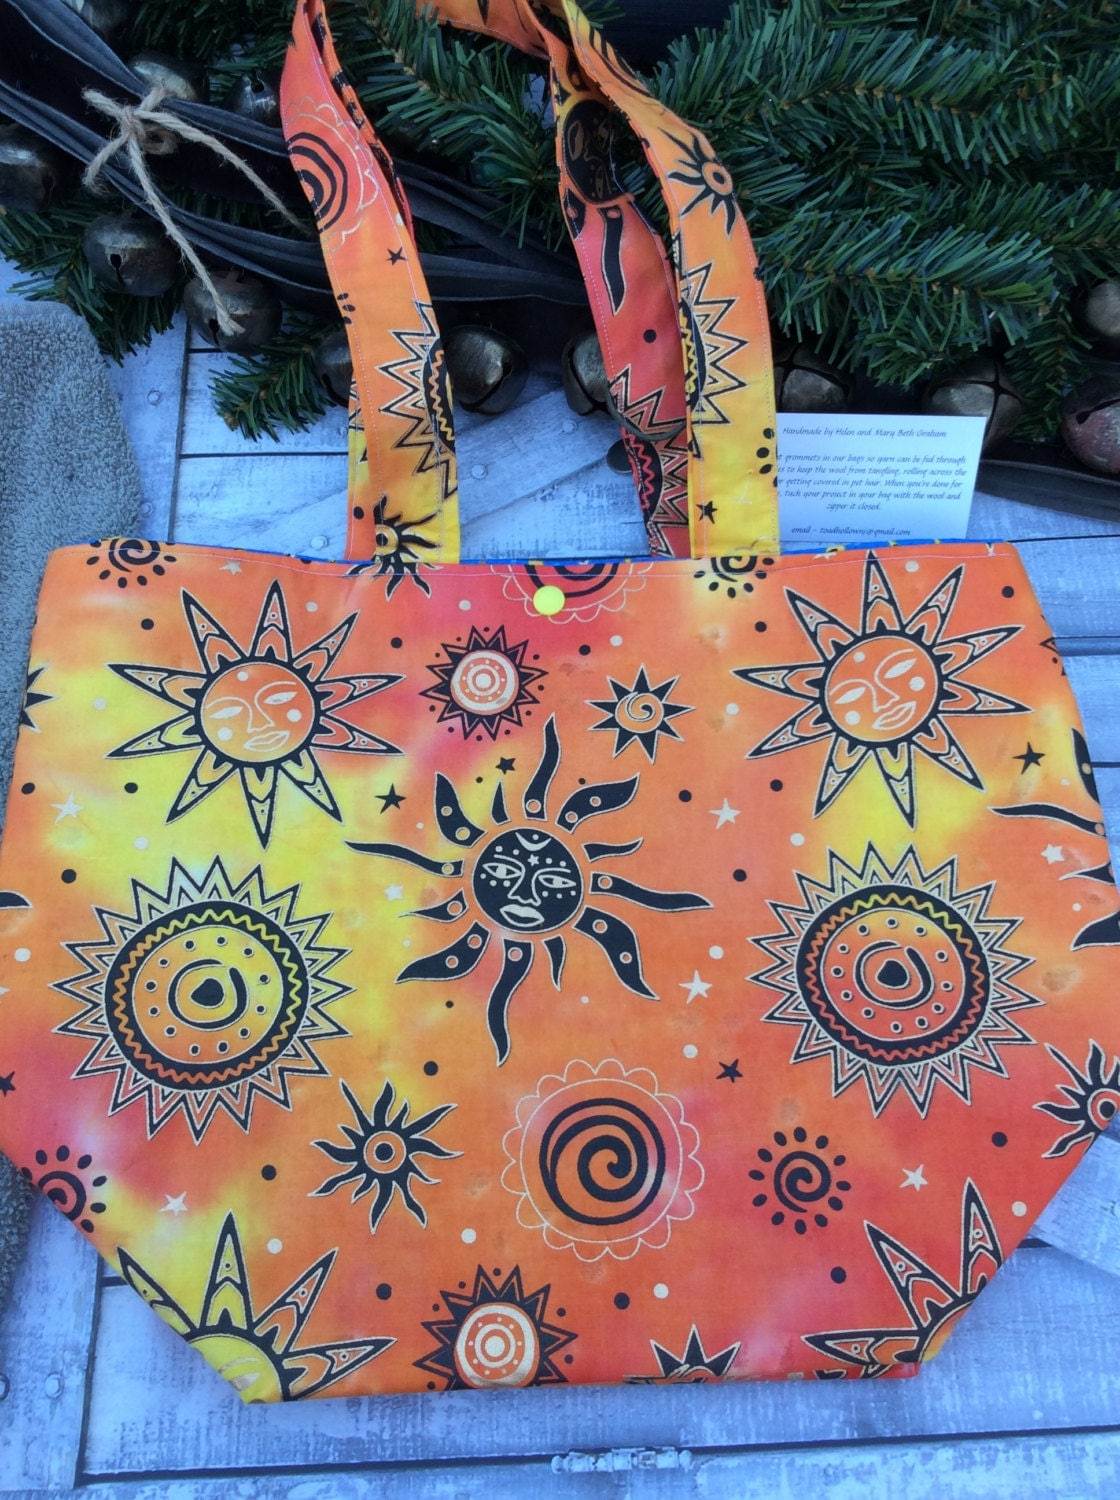 Knitting Project Bag-Extra Large Bright Colored Sun bag,Toad Hollow Bag,Crochet Project Bag,Louisa bag,xlarge yarn keeper,wedge knitting bag